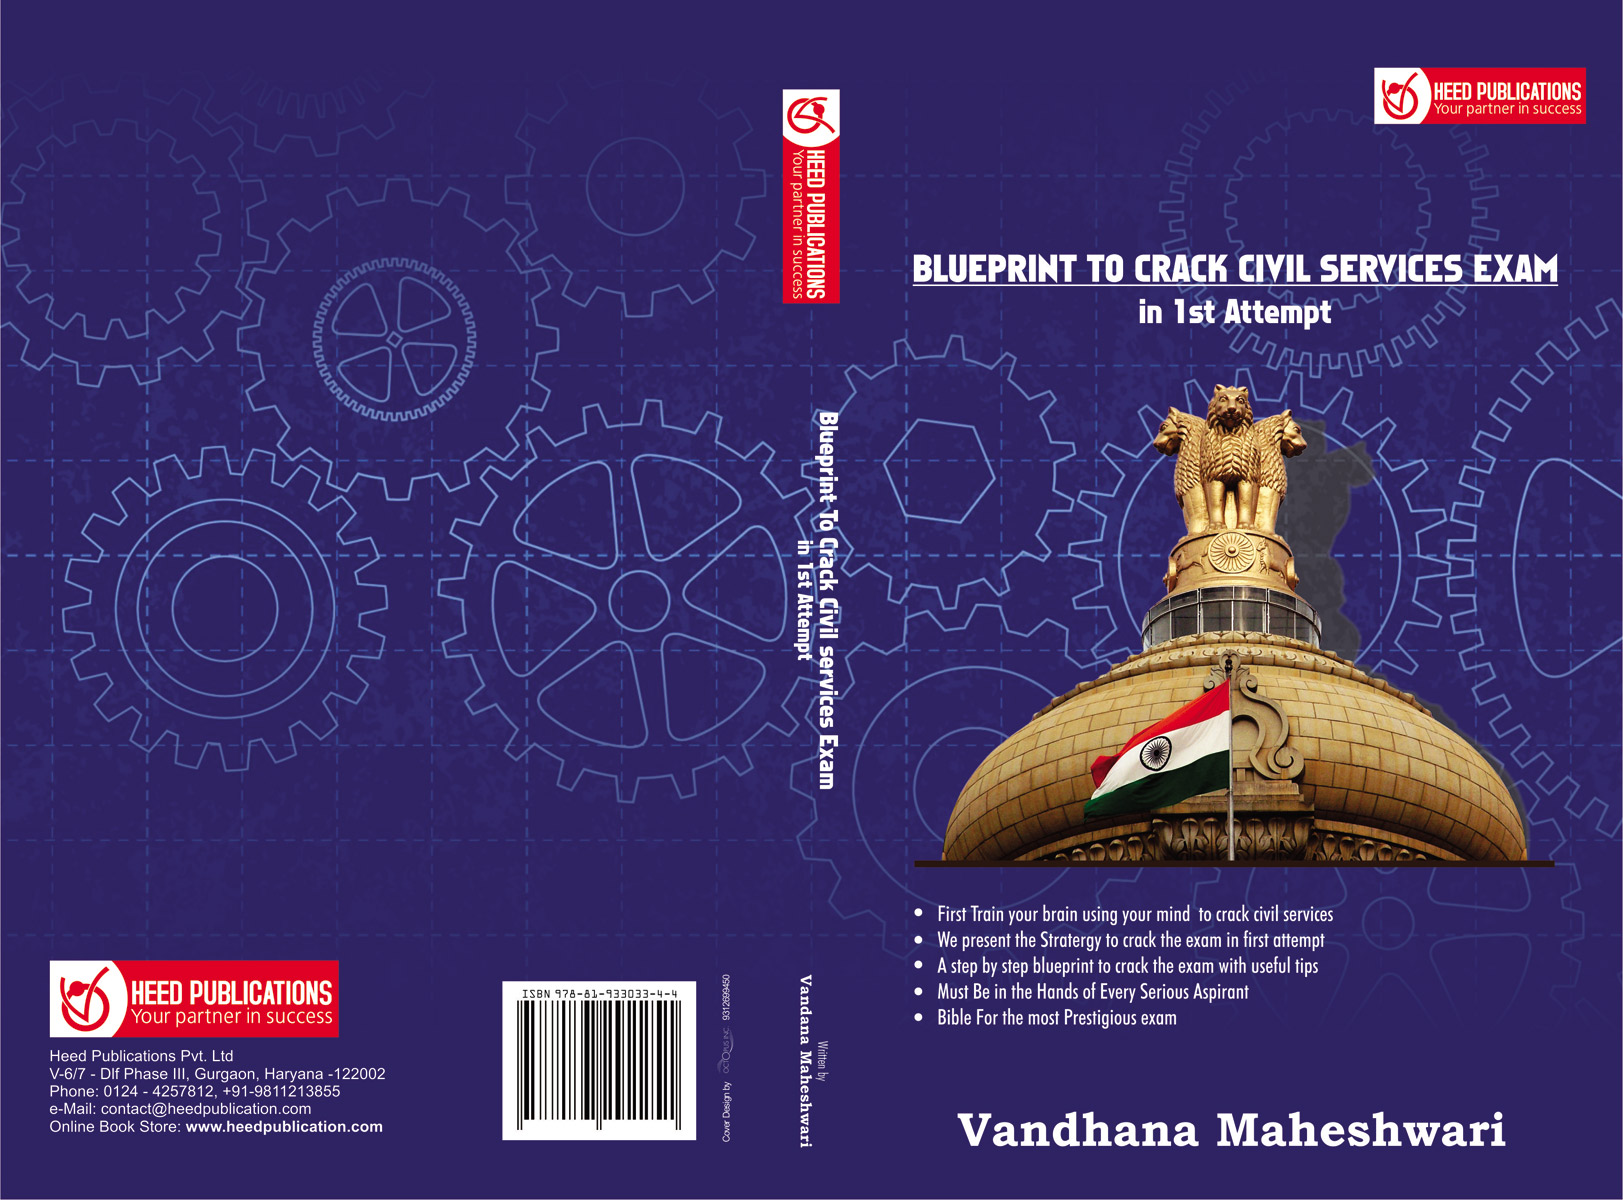 Blueprint to crack ias in first attempt heed publication blueprint to crack civil services exam in 1st malvernweather Gallery